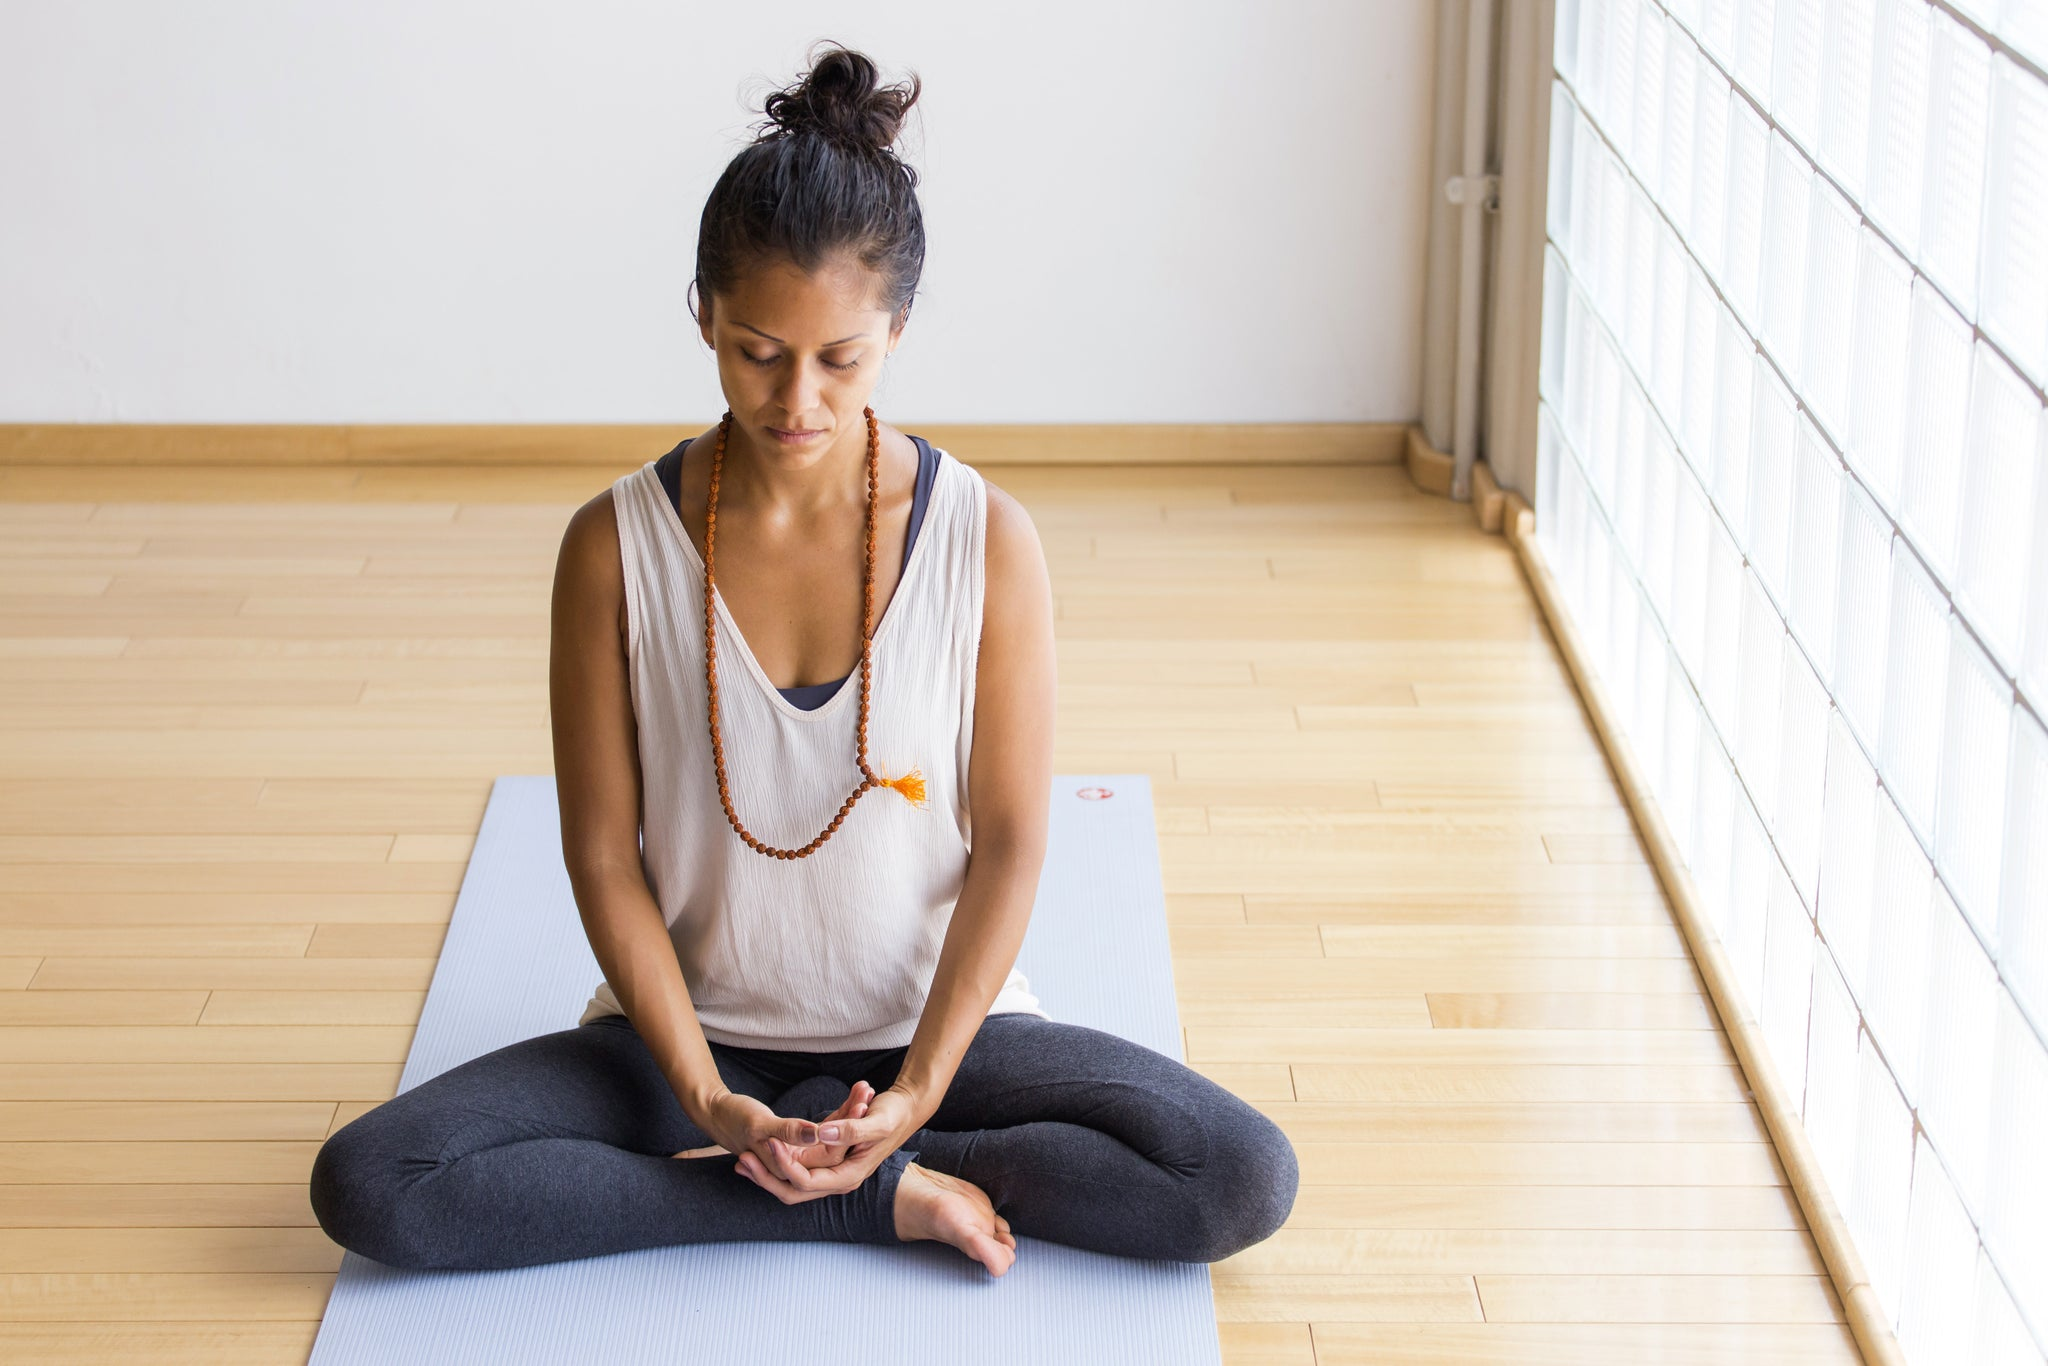 Ways to Energize Your Mantra Practice